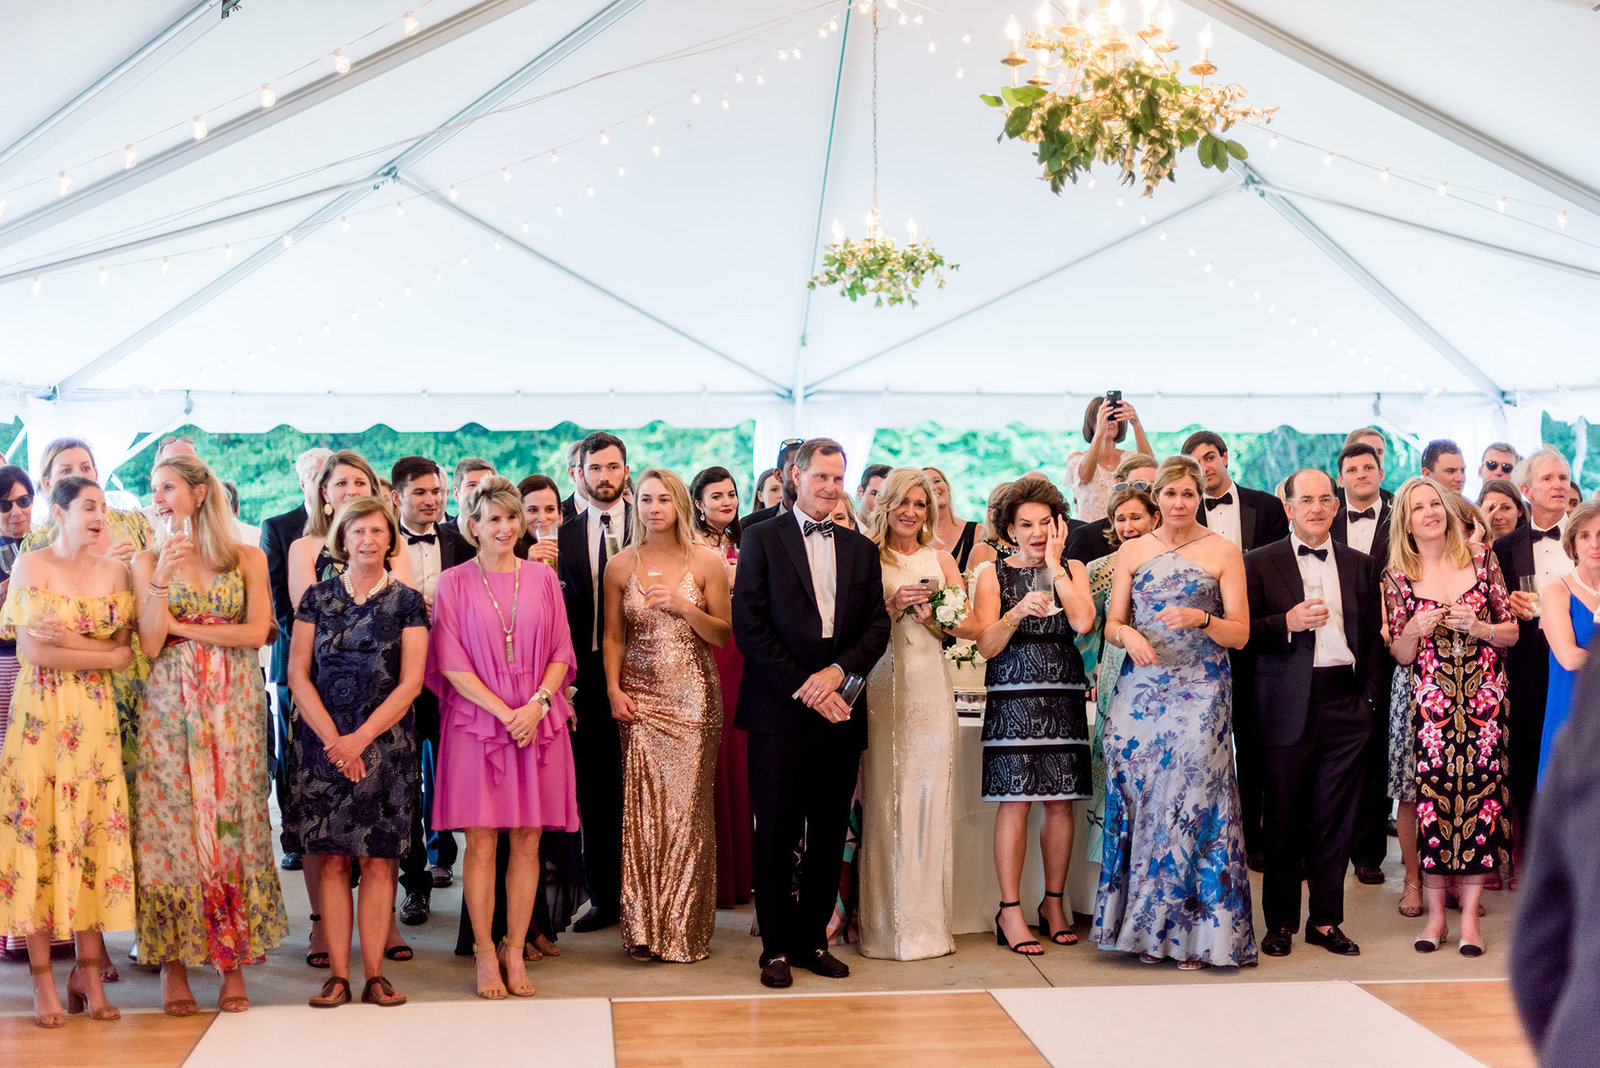 20190526-Pura-Soul-Photo-Caroline-Daniel-Wedding-703